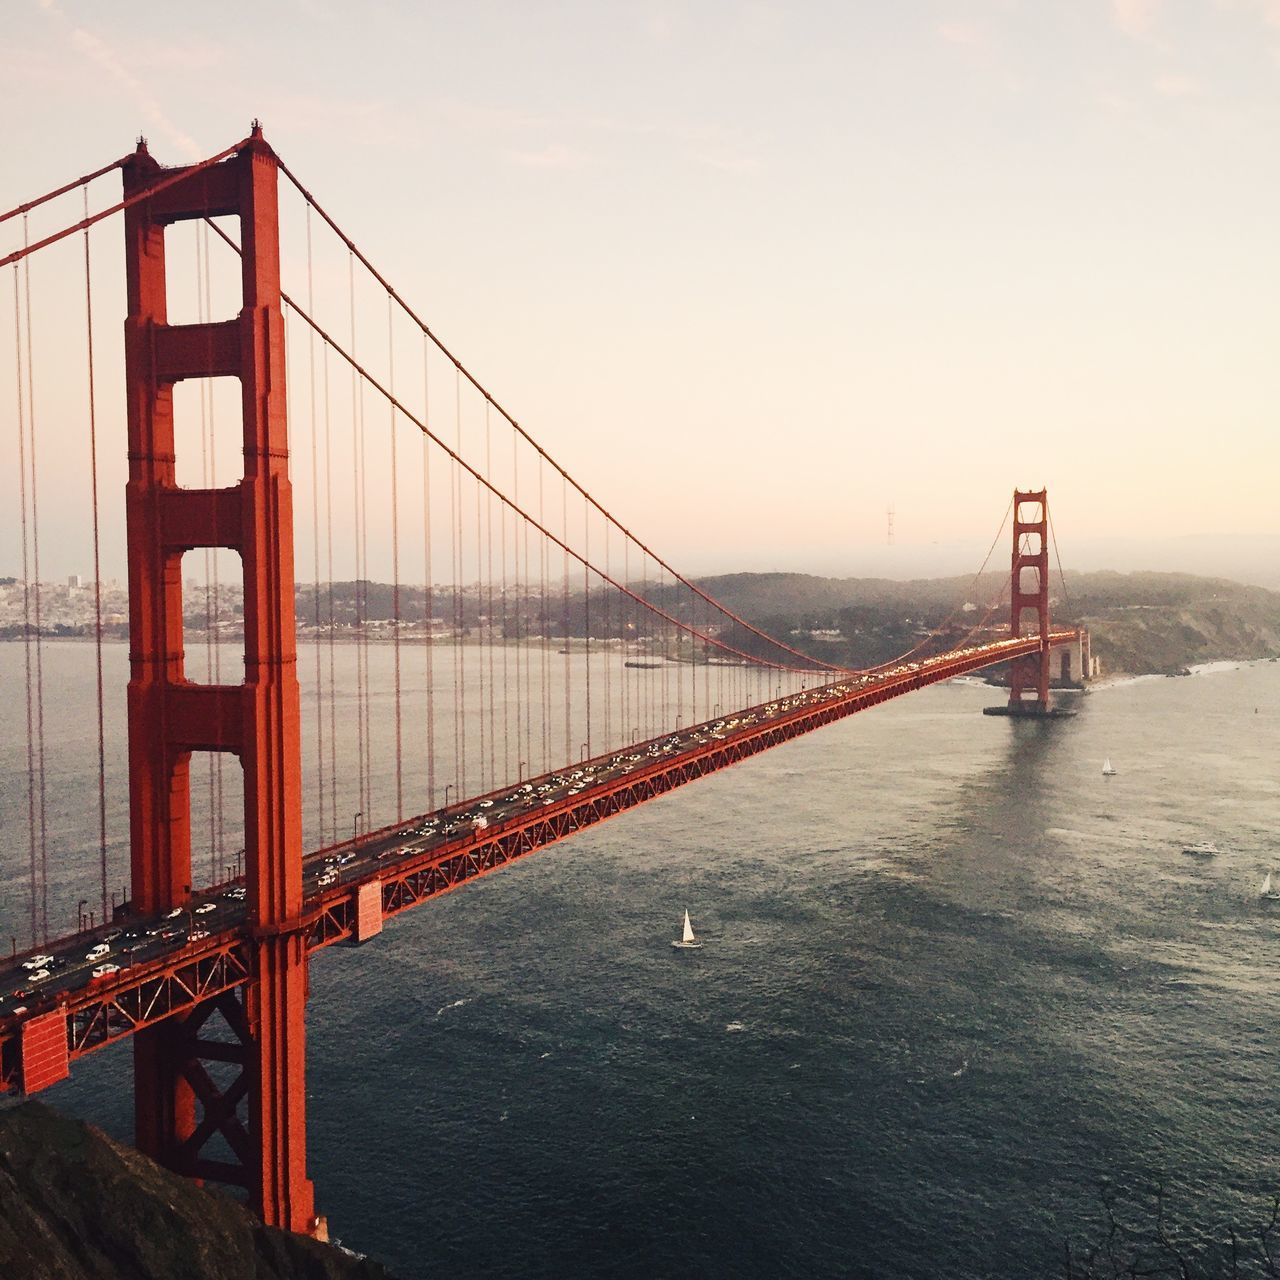 Golden Gate bridge at San Francisco, USA. Architecture Bridge - Man Made Structure Built Structure California City Cityscape Connection Day Golden Gate Bridge Golden Gate Park IPhone IPhoneography No People Outdoors San Francisco Sea Sky Square Suspension Bridge Transportation Travel Travel Destinations USA Water